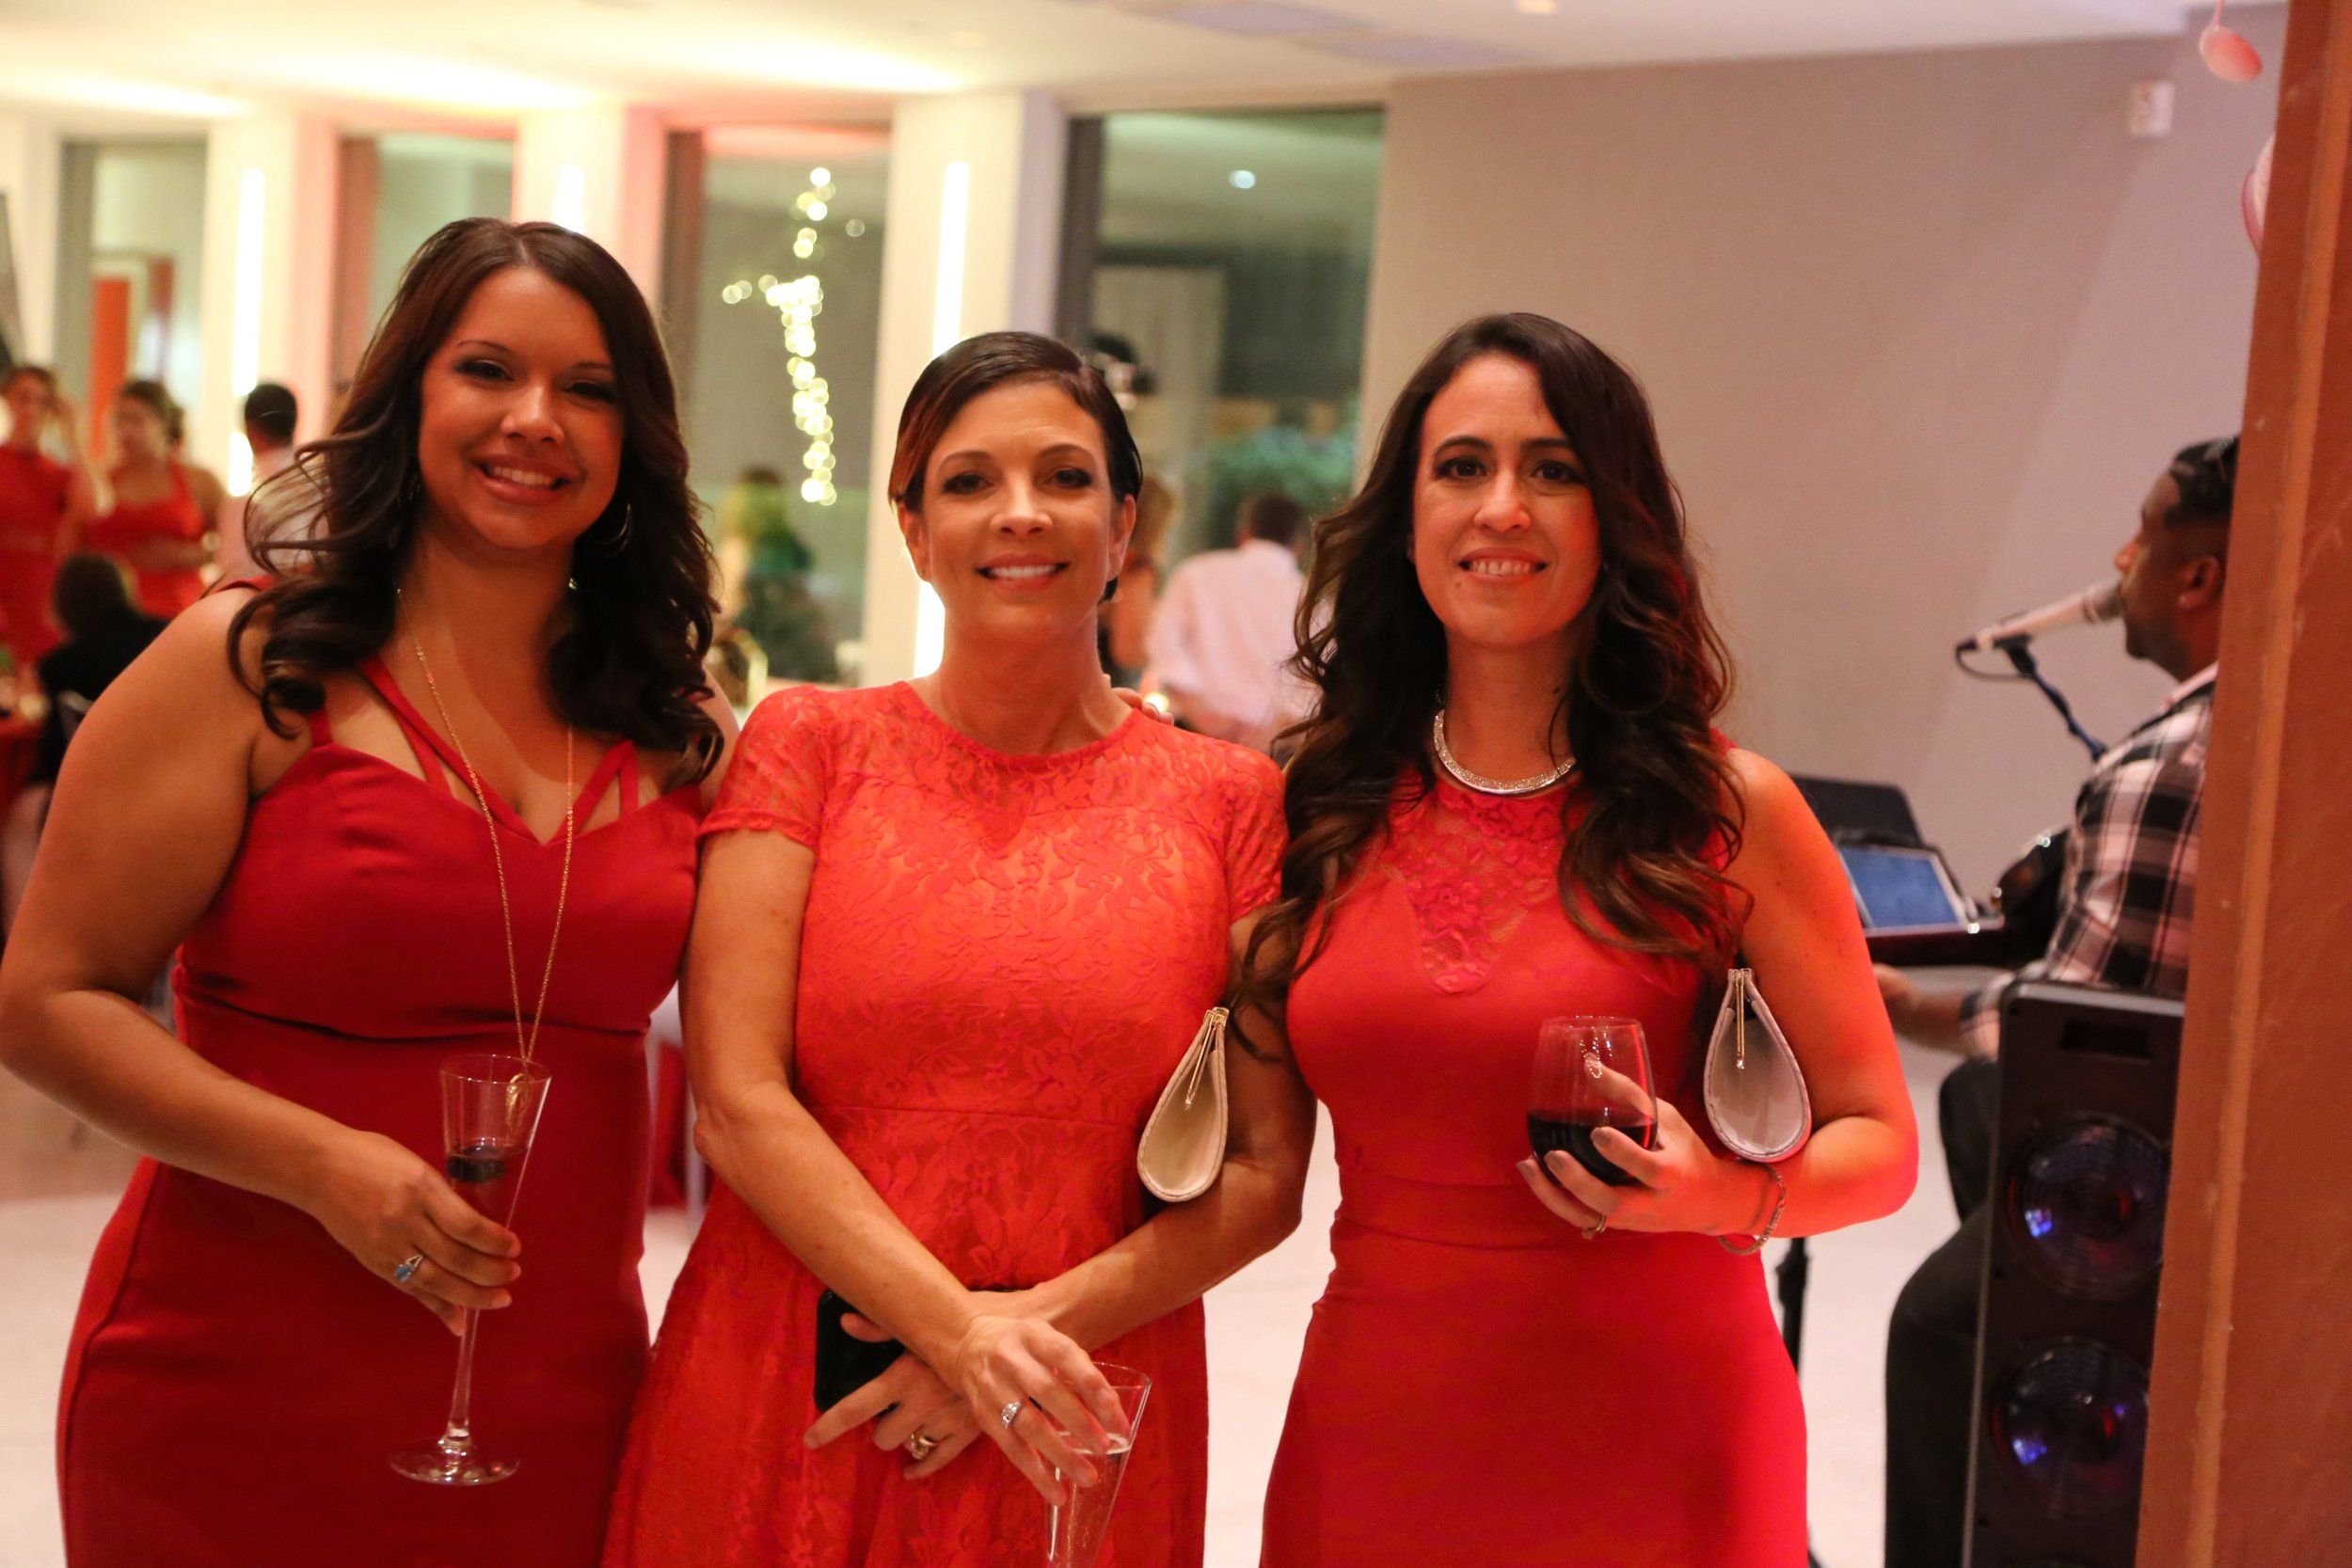 Evelyn Jung, Stacey Payne and Vivian Ayala - the ladies who run the Candelaria Design show!